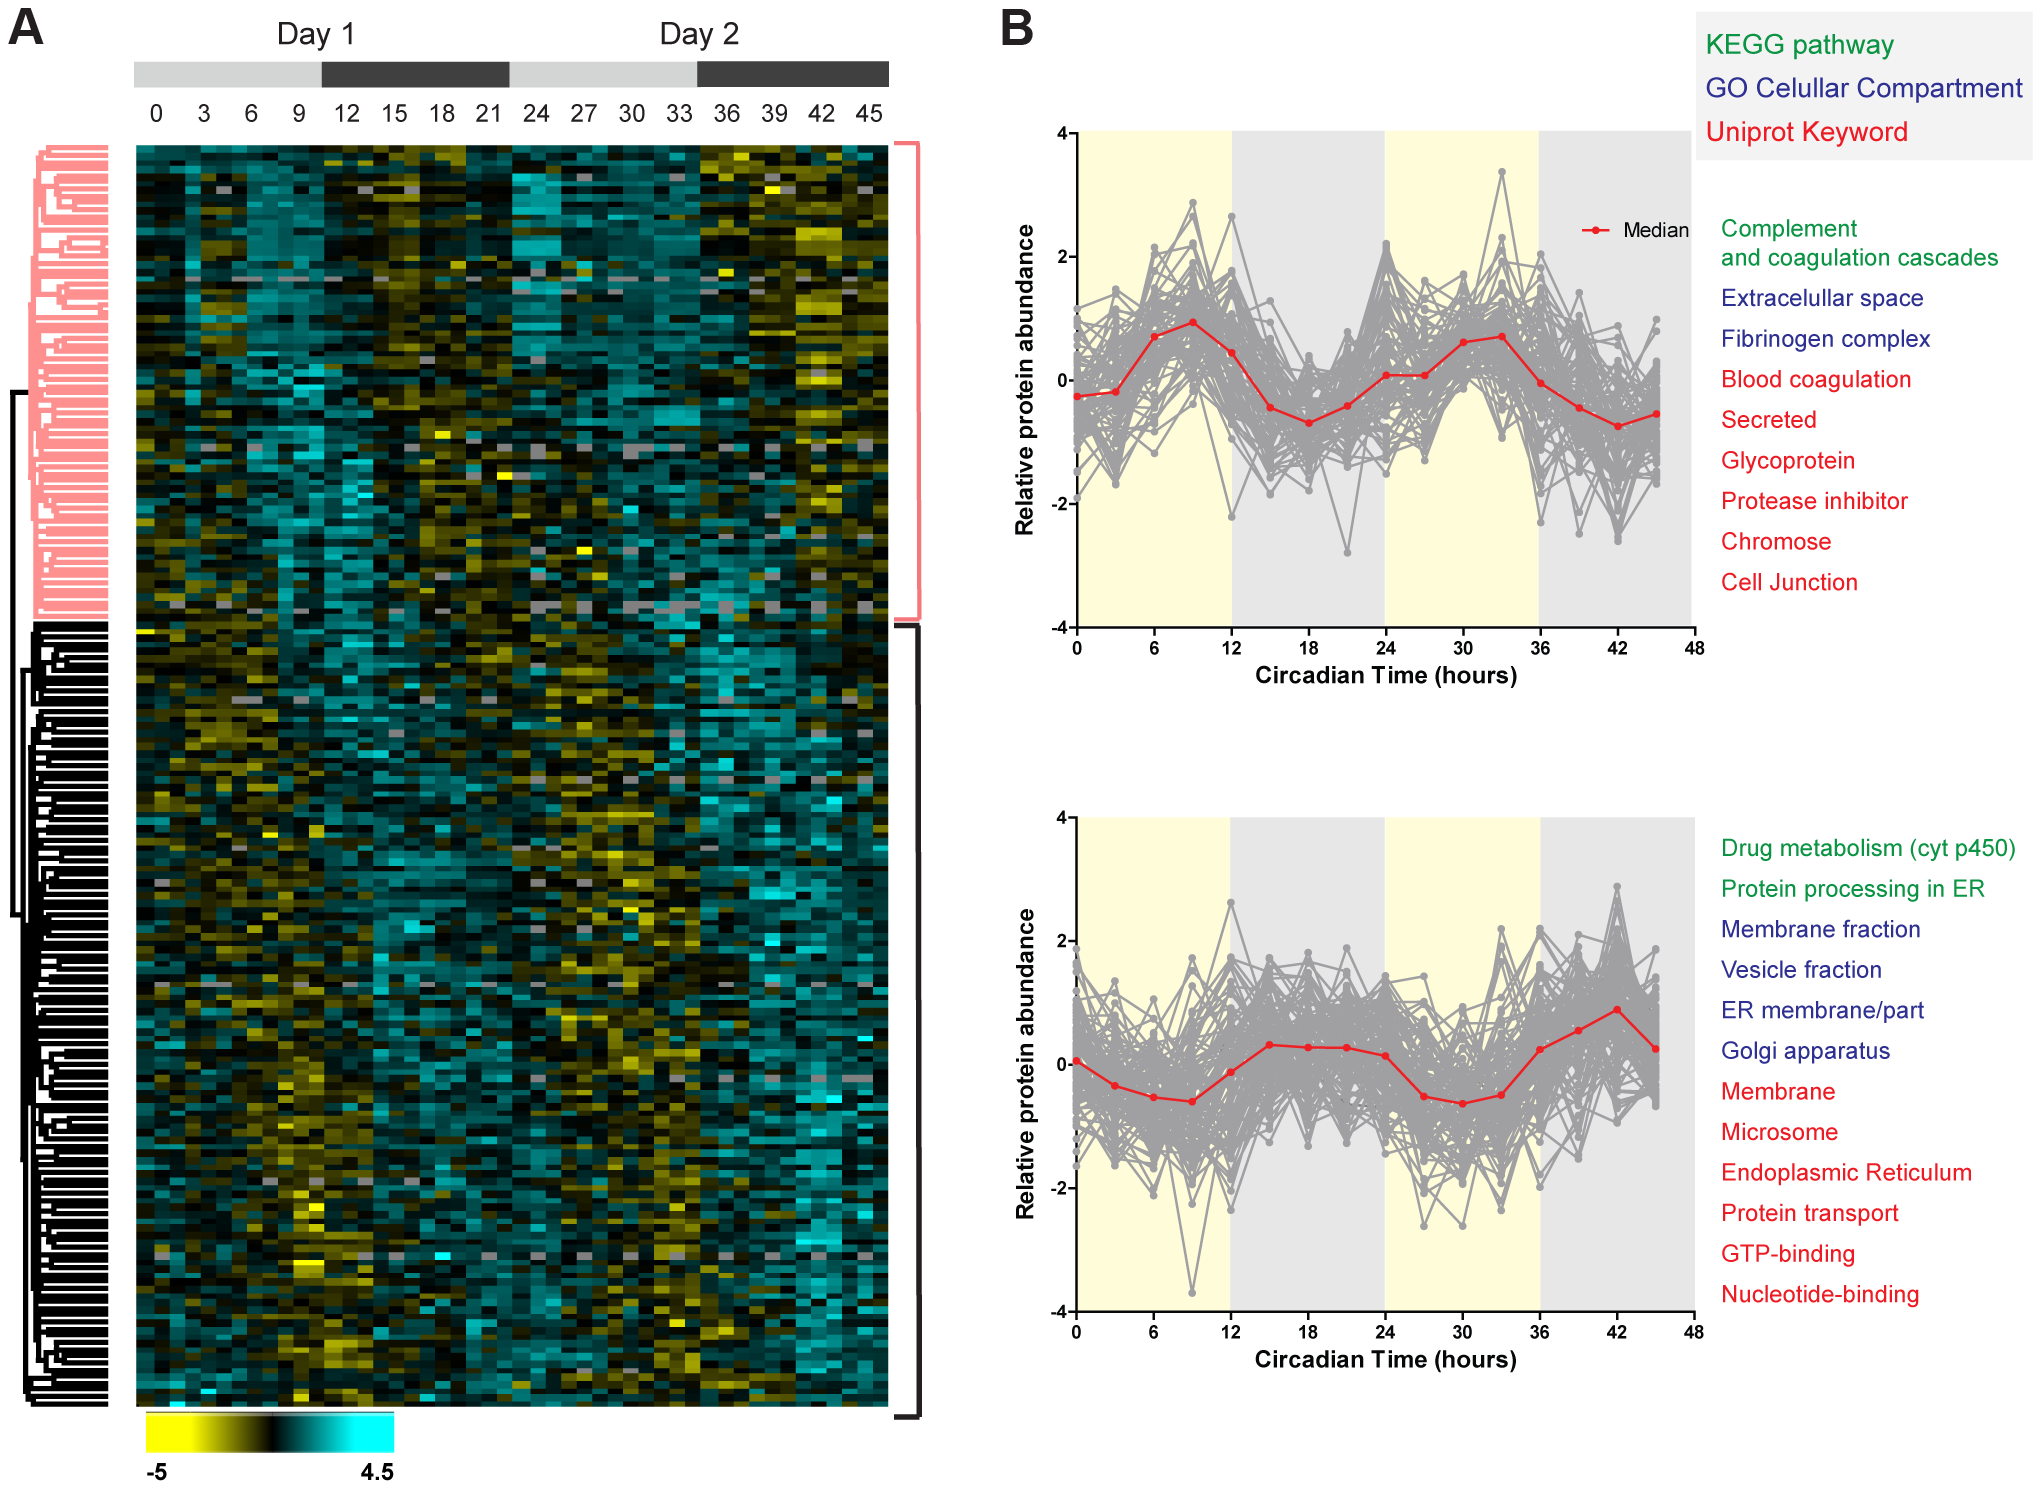 Temporal profile of the mouse liver proteome across two consecutive cycles.